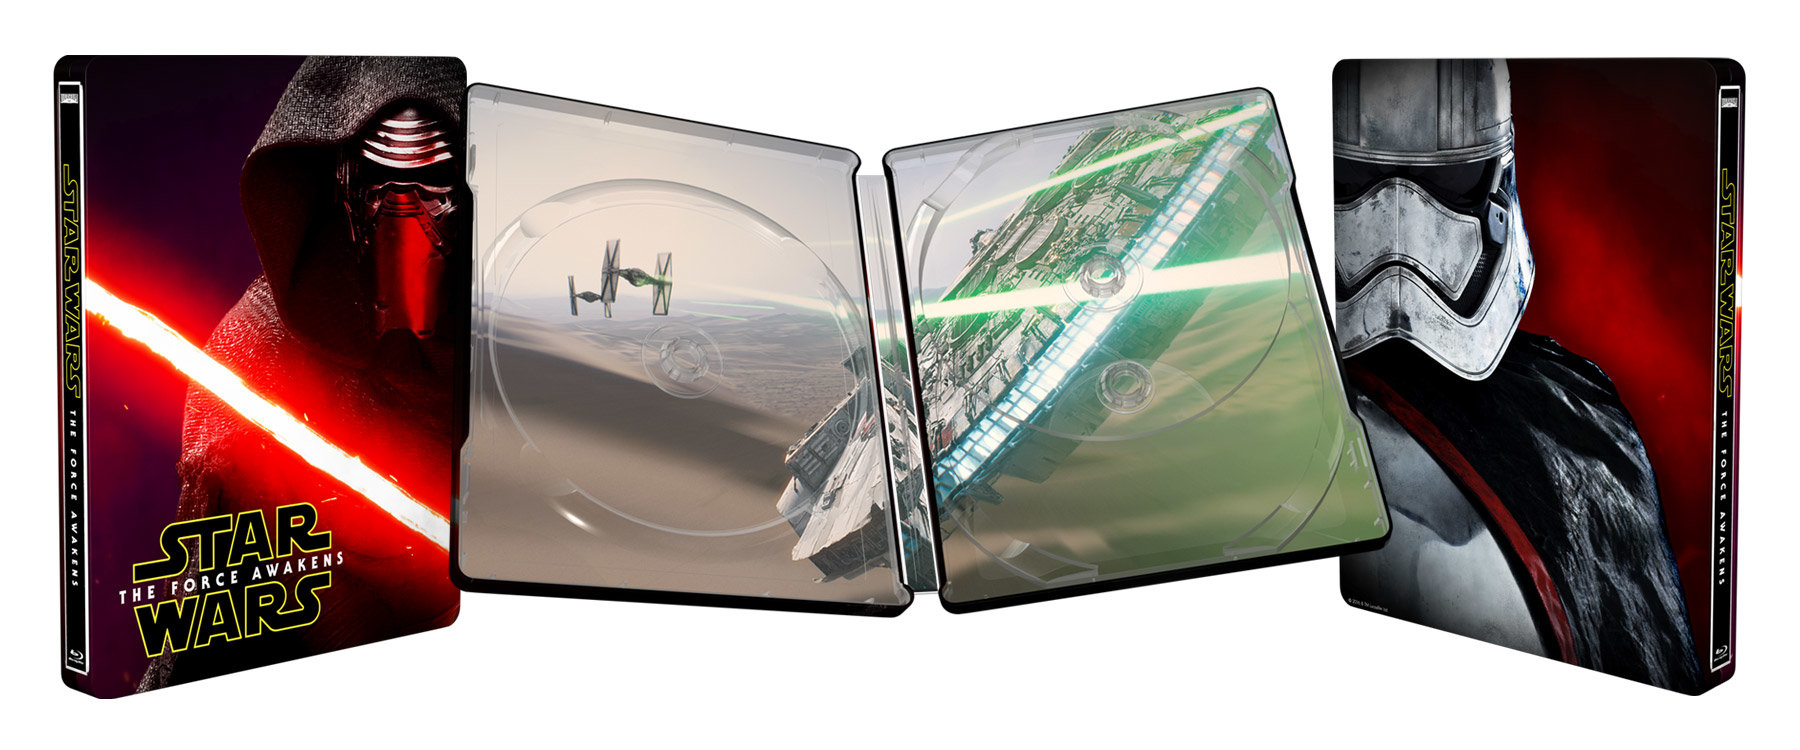 Star Wars Le Réveil De La Force Steelbook Best Buy